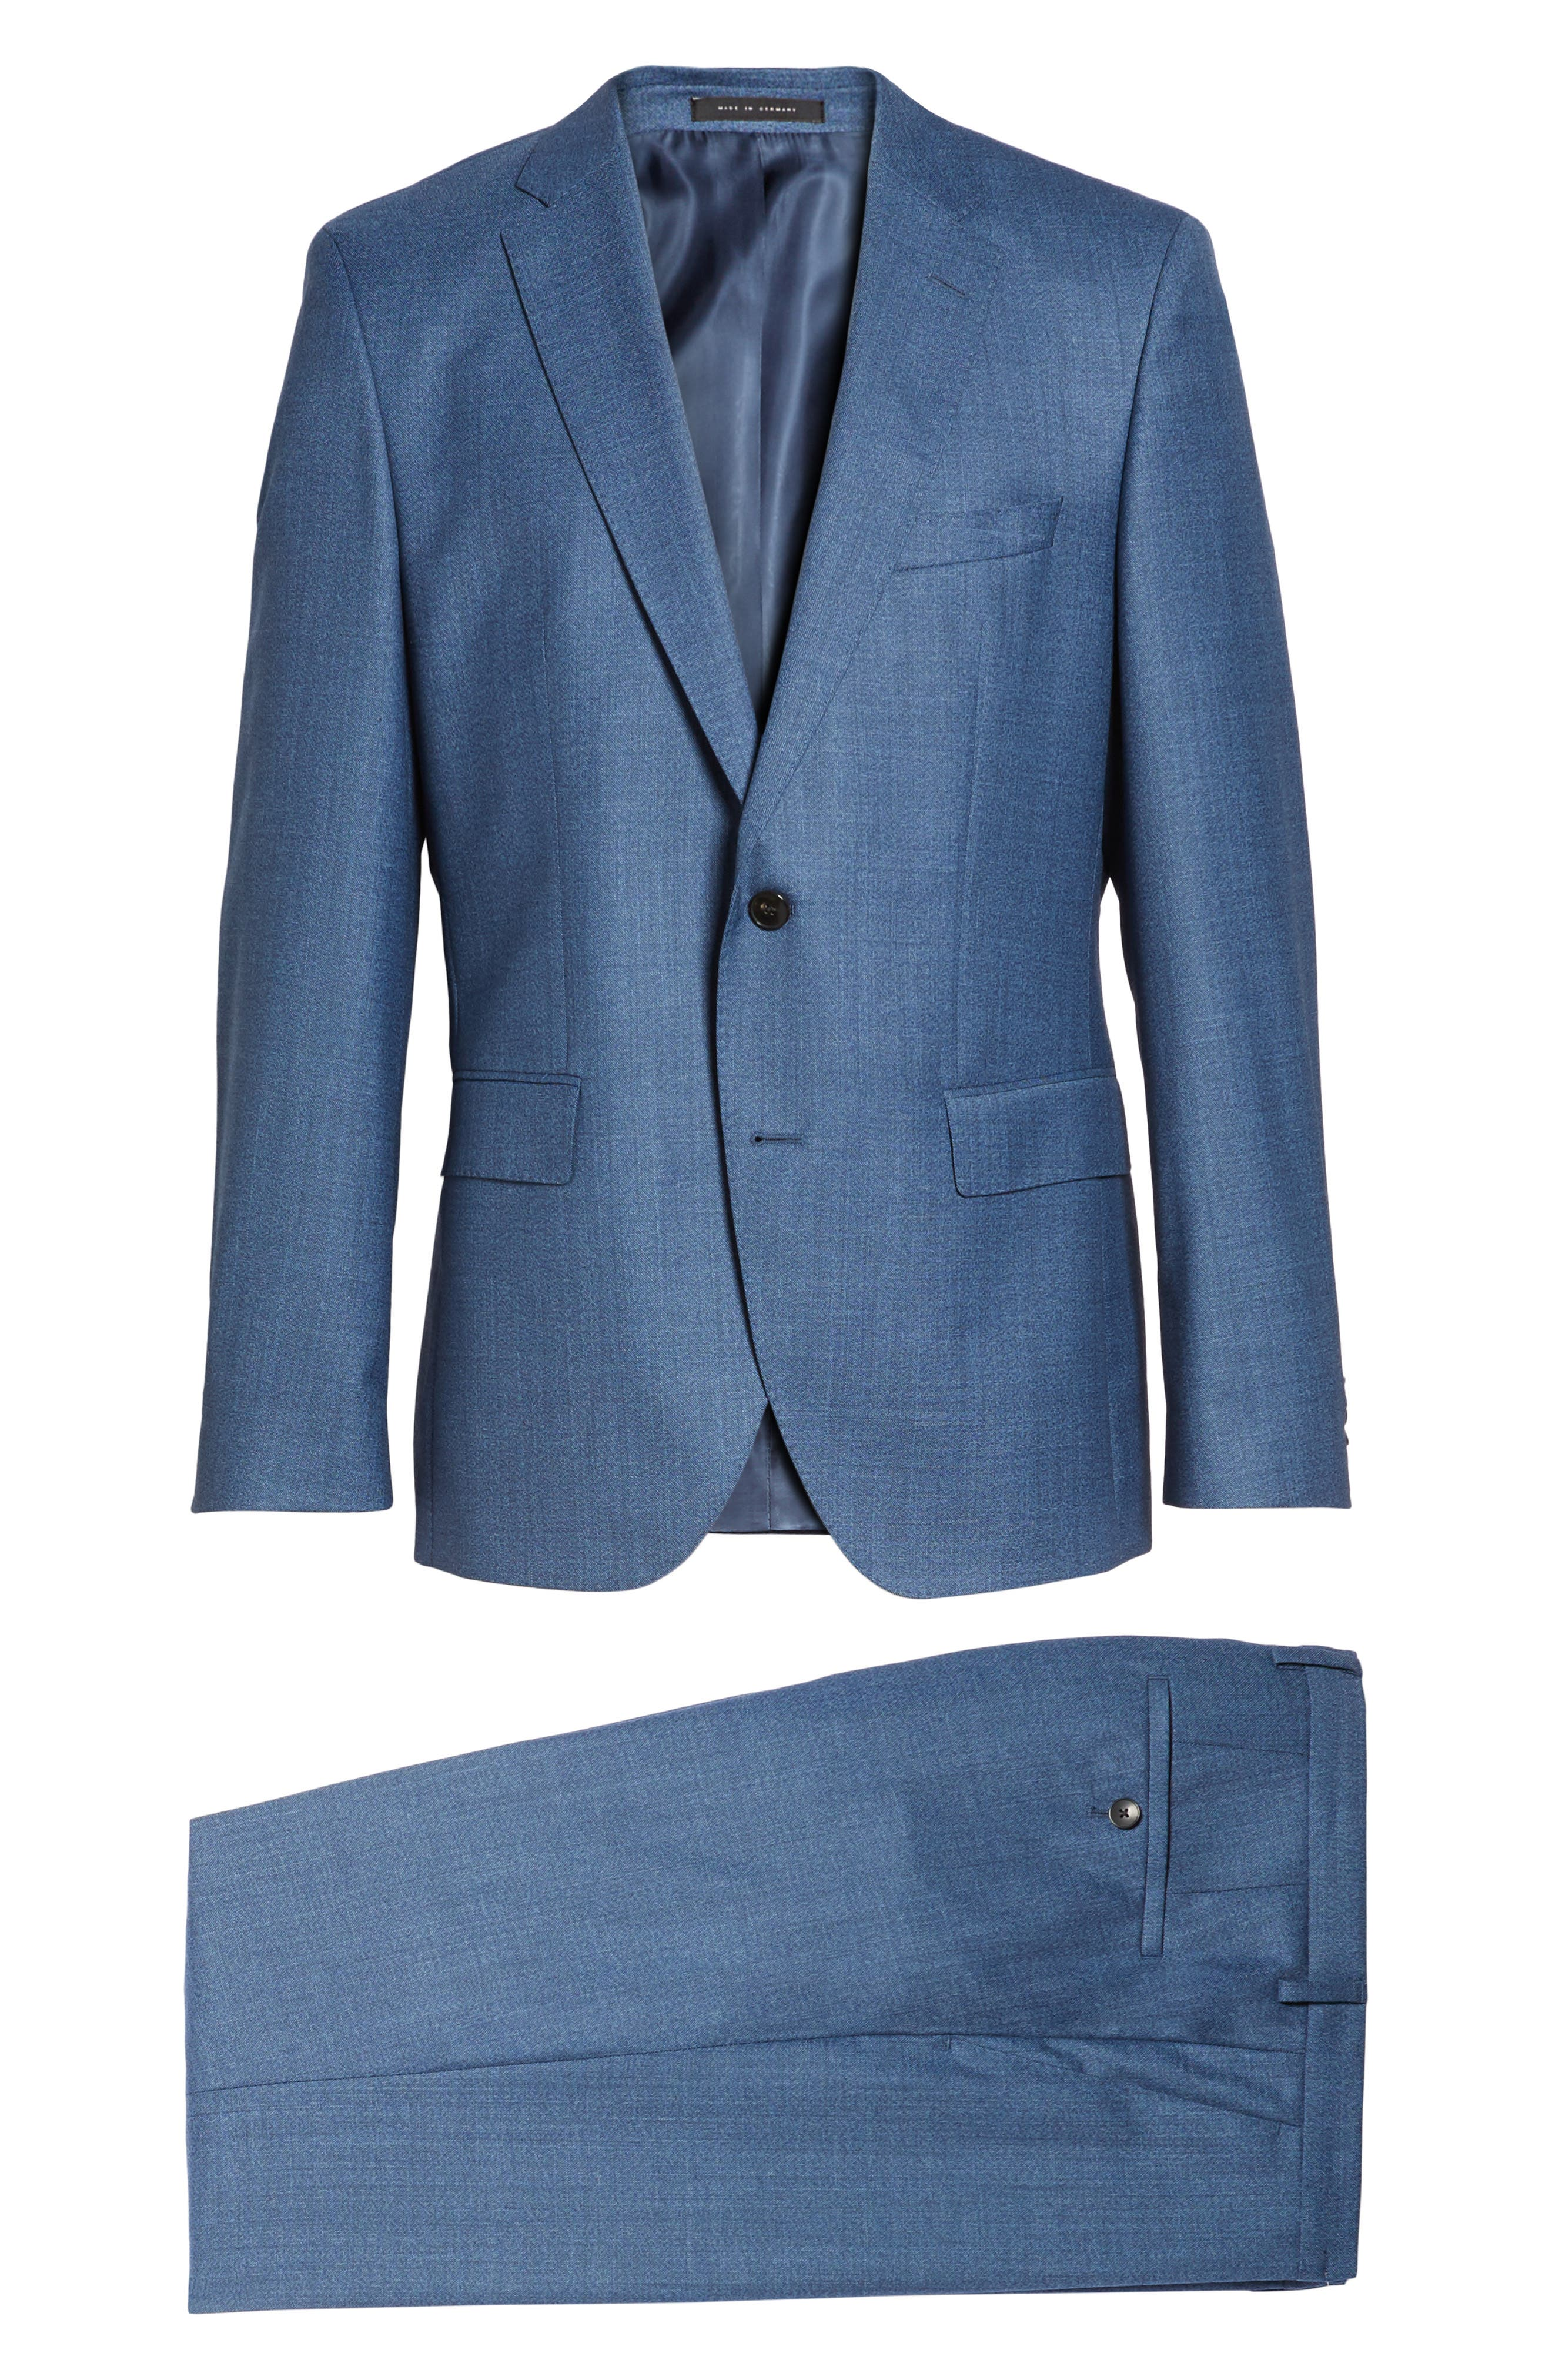 Johnstons/Lenon Classic Fit Solid Wool Suit,                             Alternate thumbnail 8, color,                             421